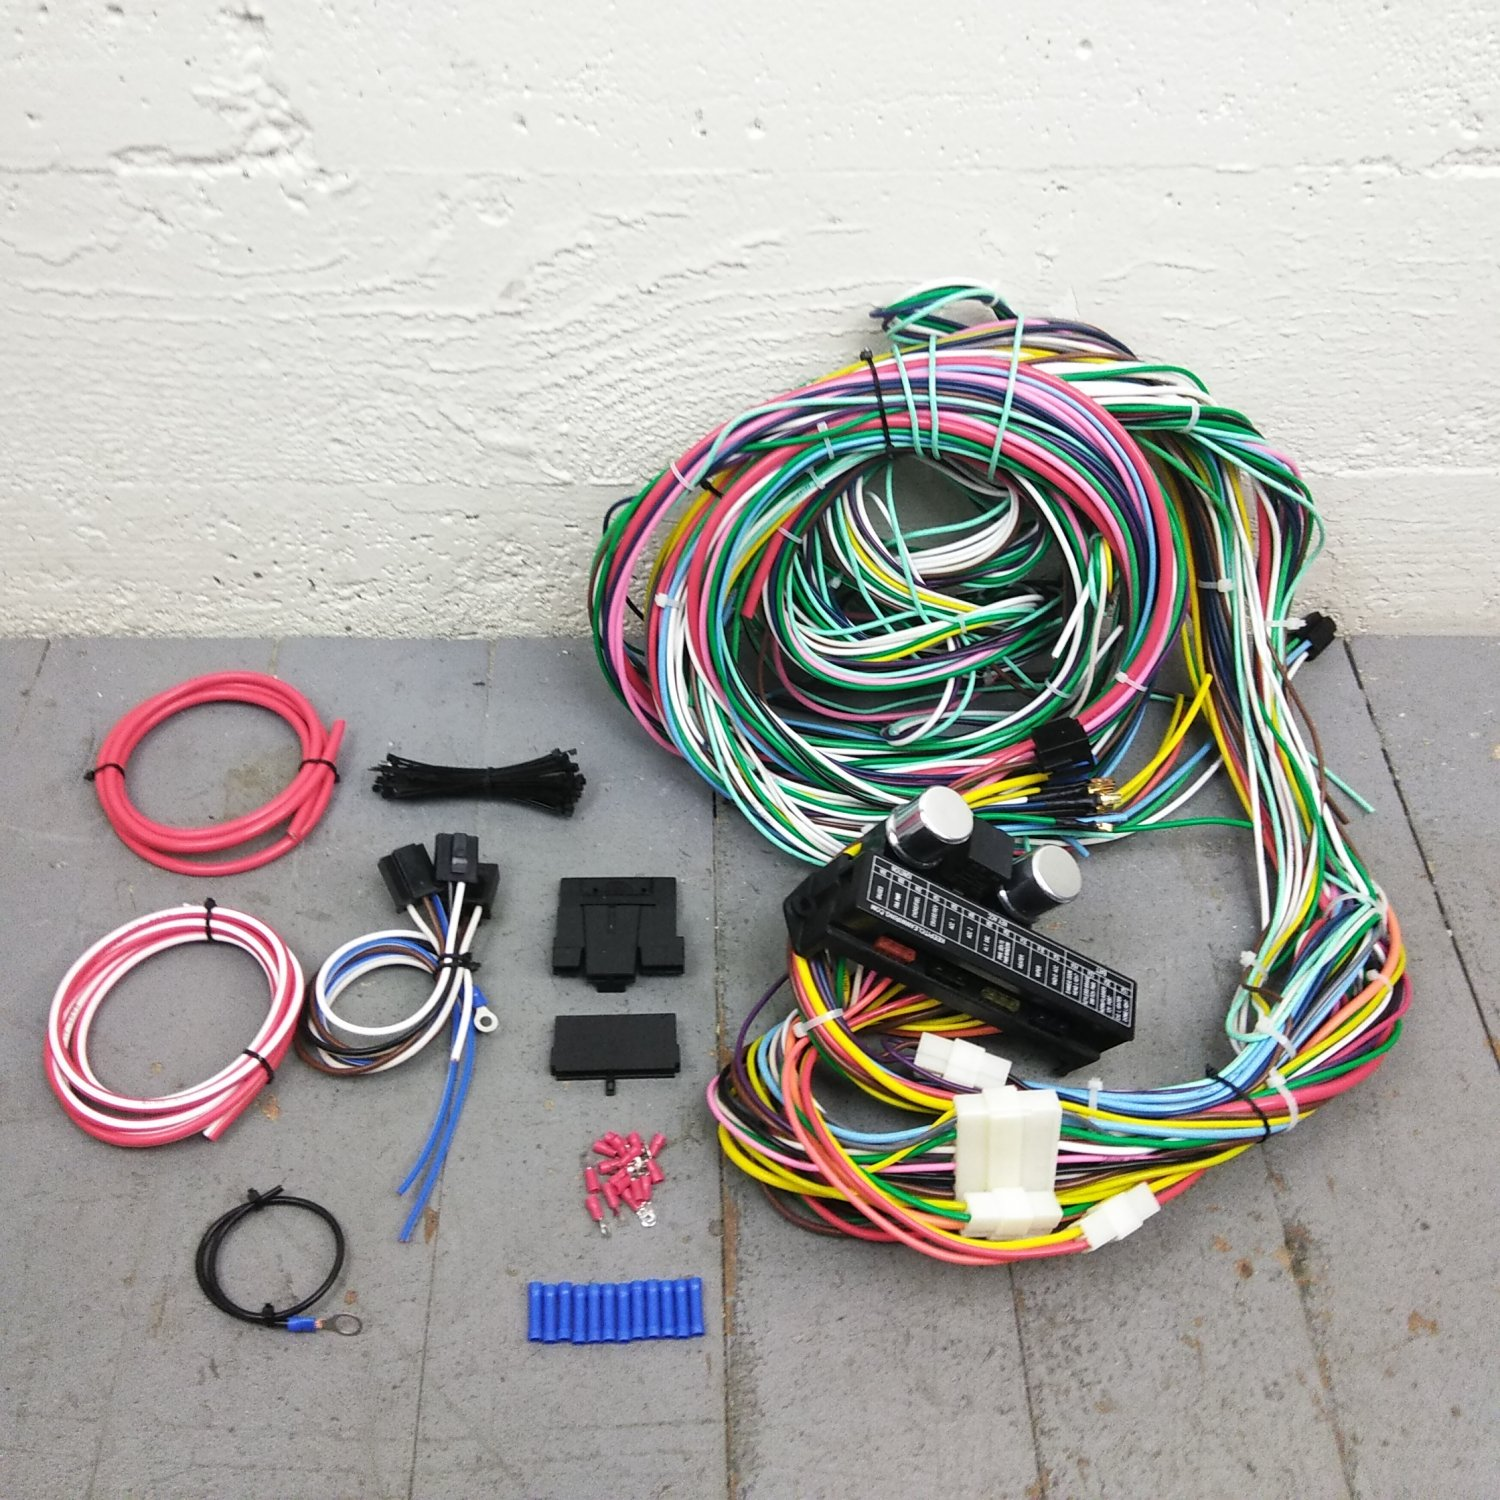 hight resolution of 1970 1971 amc rebel matador wire harness upgrade kit fits painless1970 1971 amc rebel matador wire